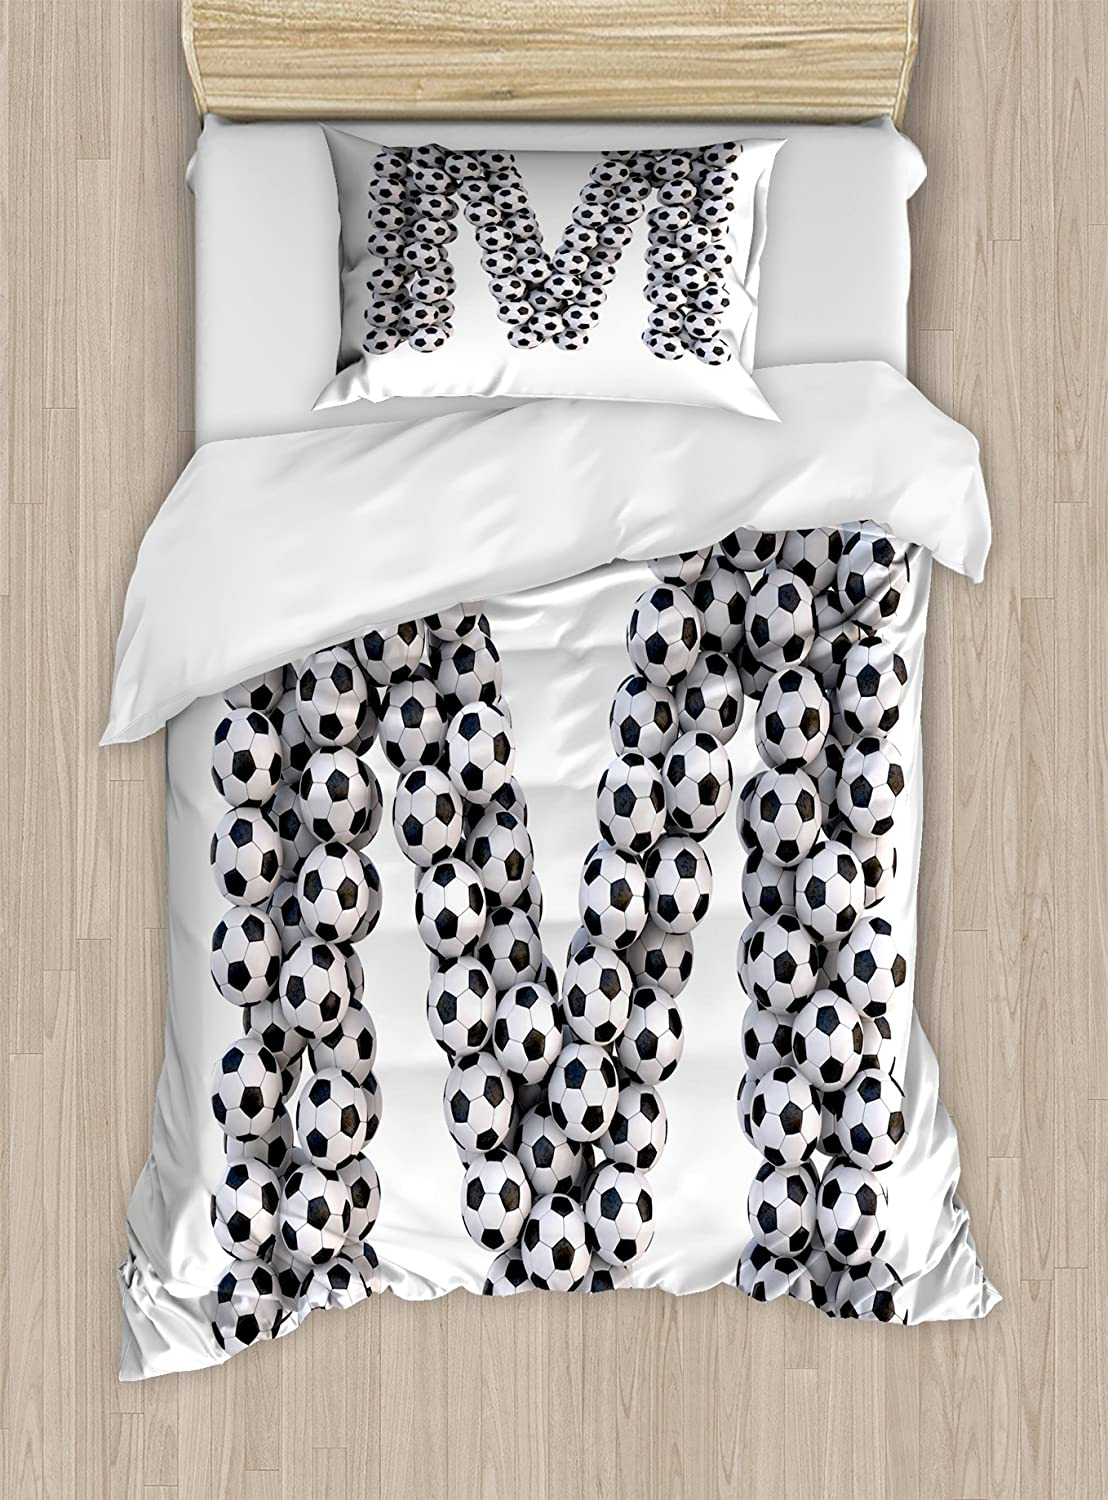 Ambesonne Letter M Duvet Cover Set, Diagonal and Vertical Stack of Soccer Balls Alphabet Letter Design, Decorative 2 Piece Bedding Set with 1 Pillow Sham, Twin Size, Black and White